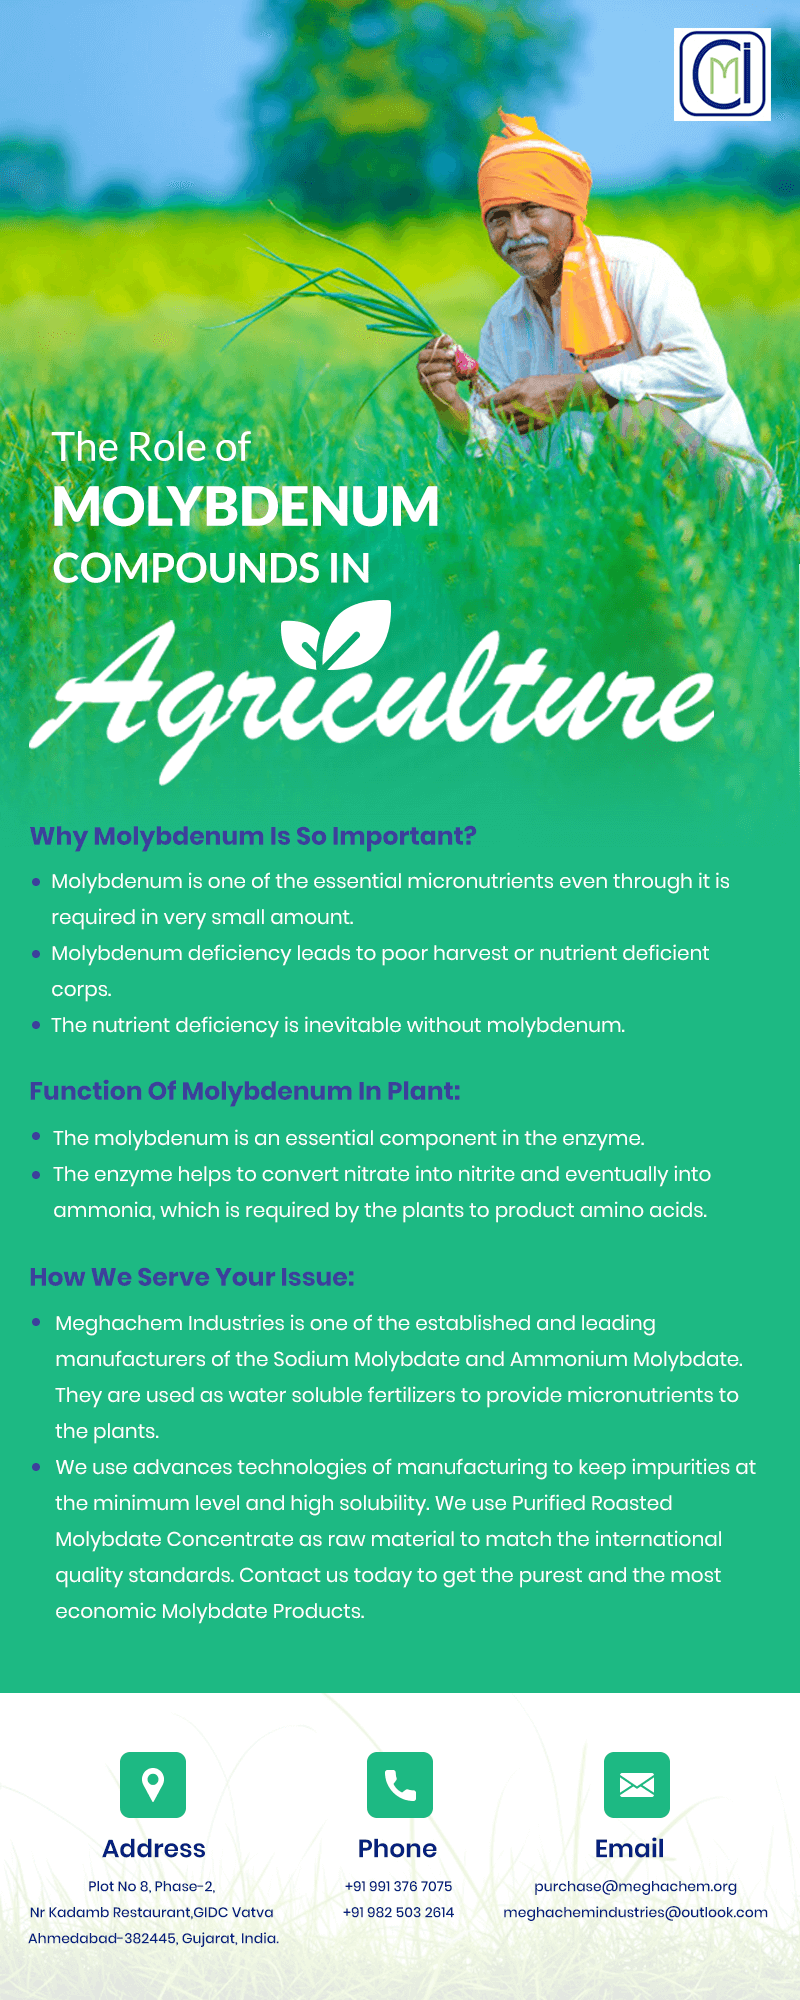 The Role of Molybdenum Compounds in Agriculture